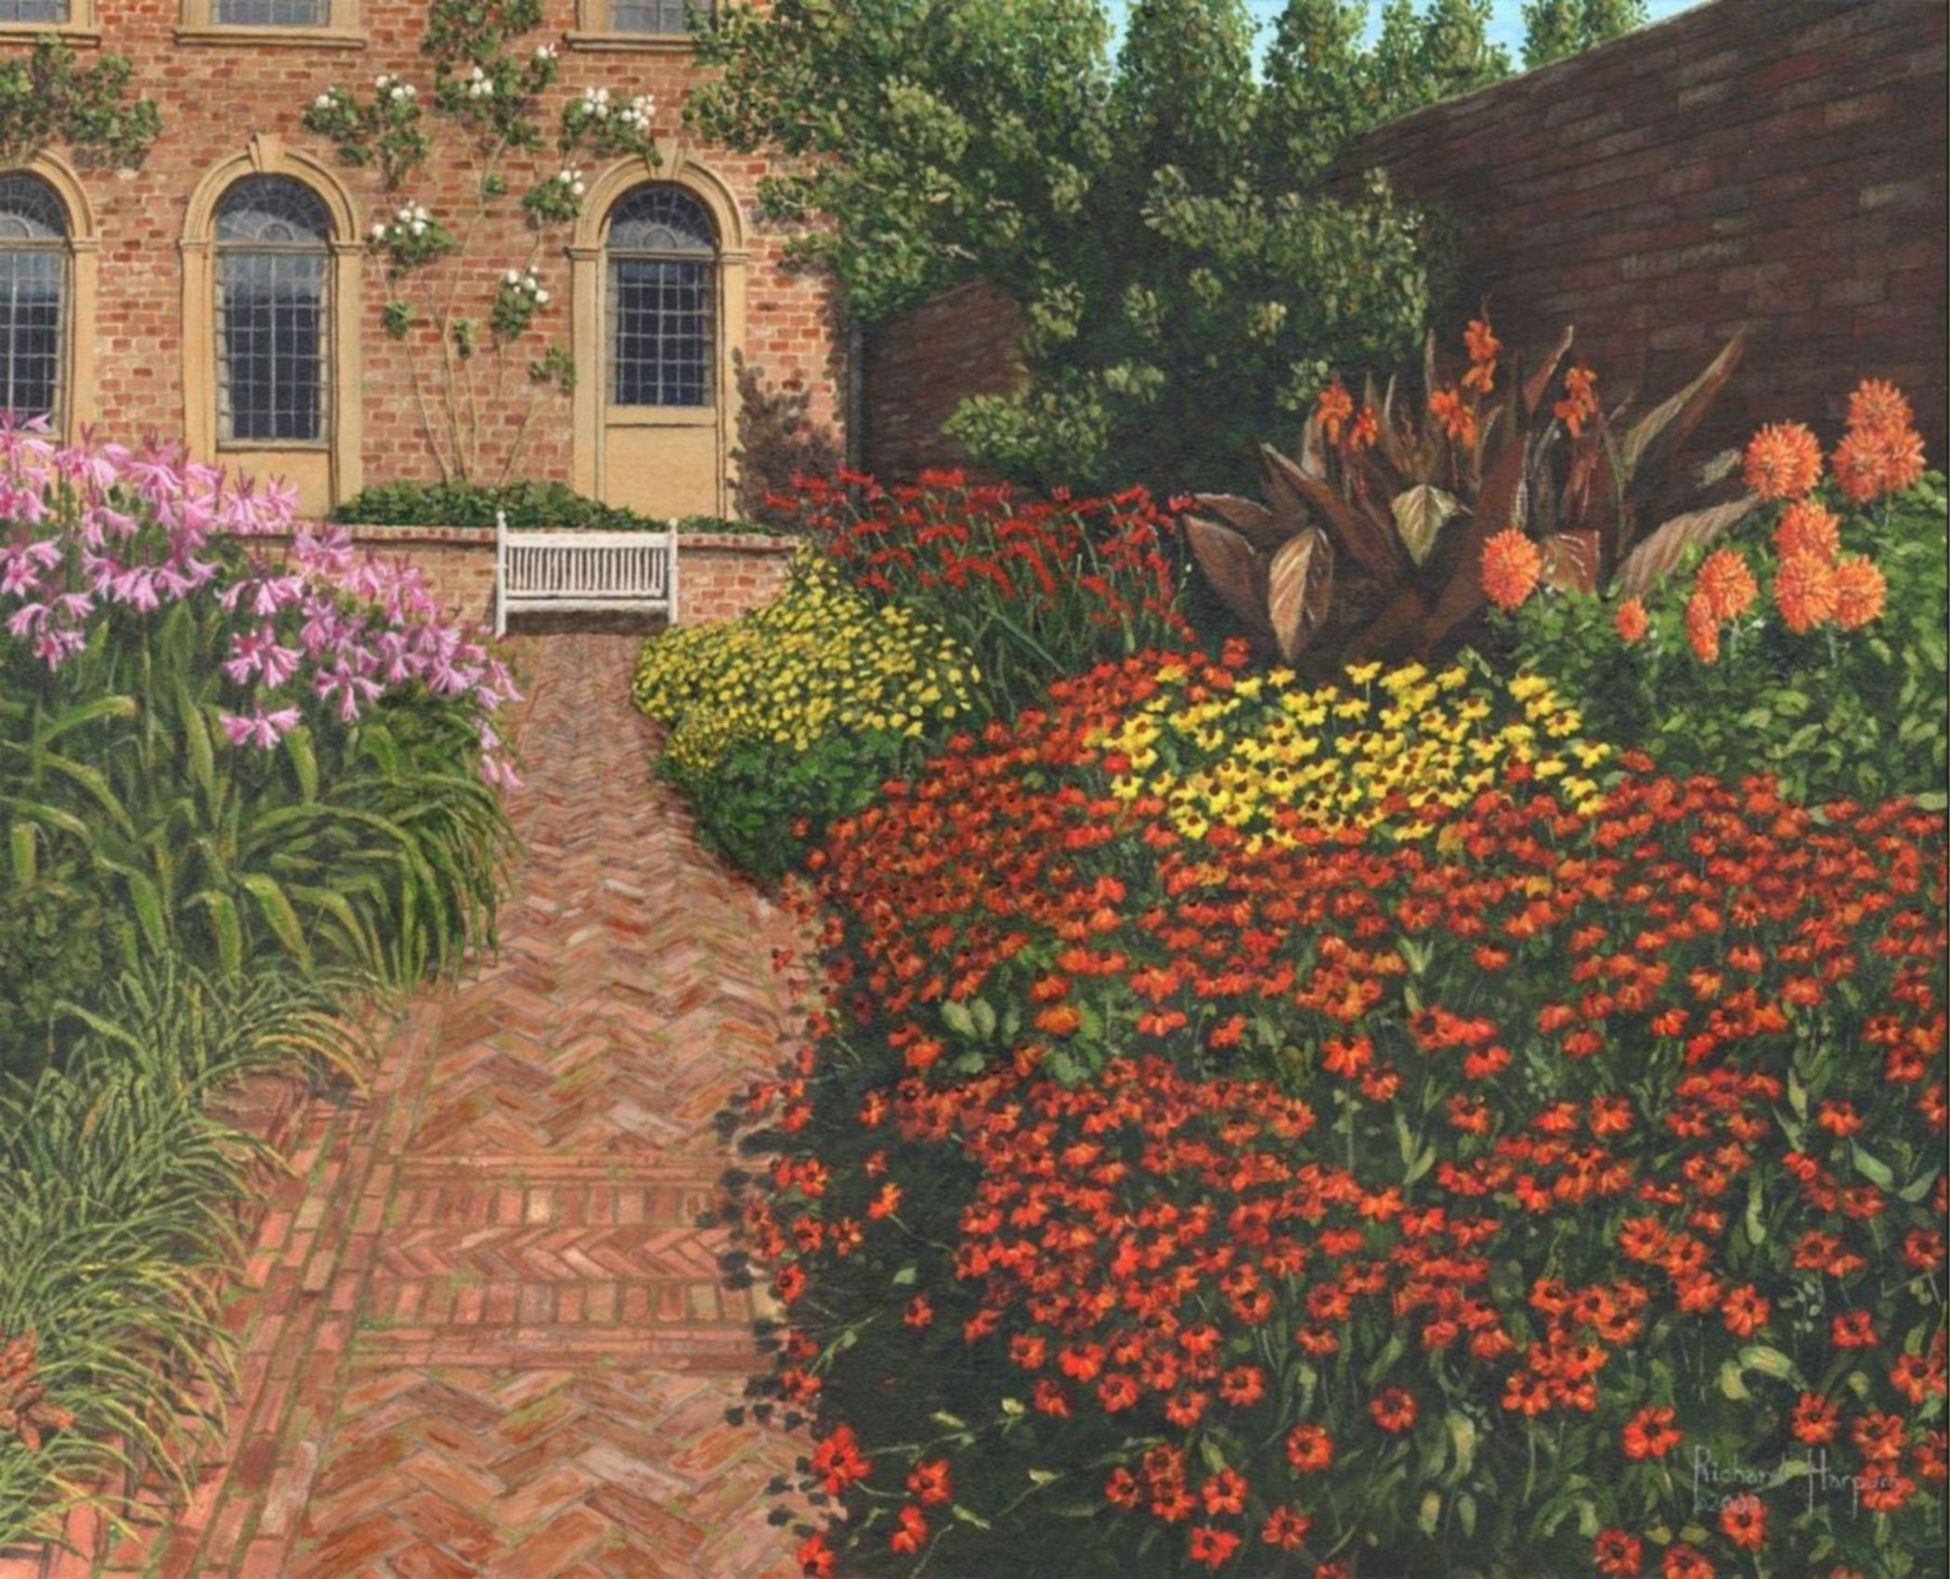 Painting - Barrington Court Gardens, Somerset